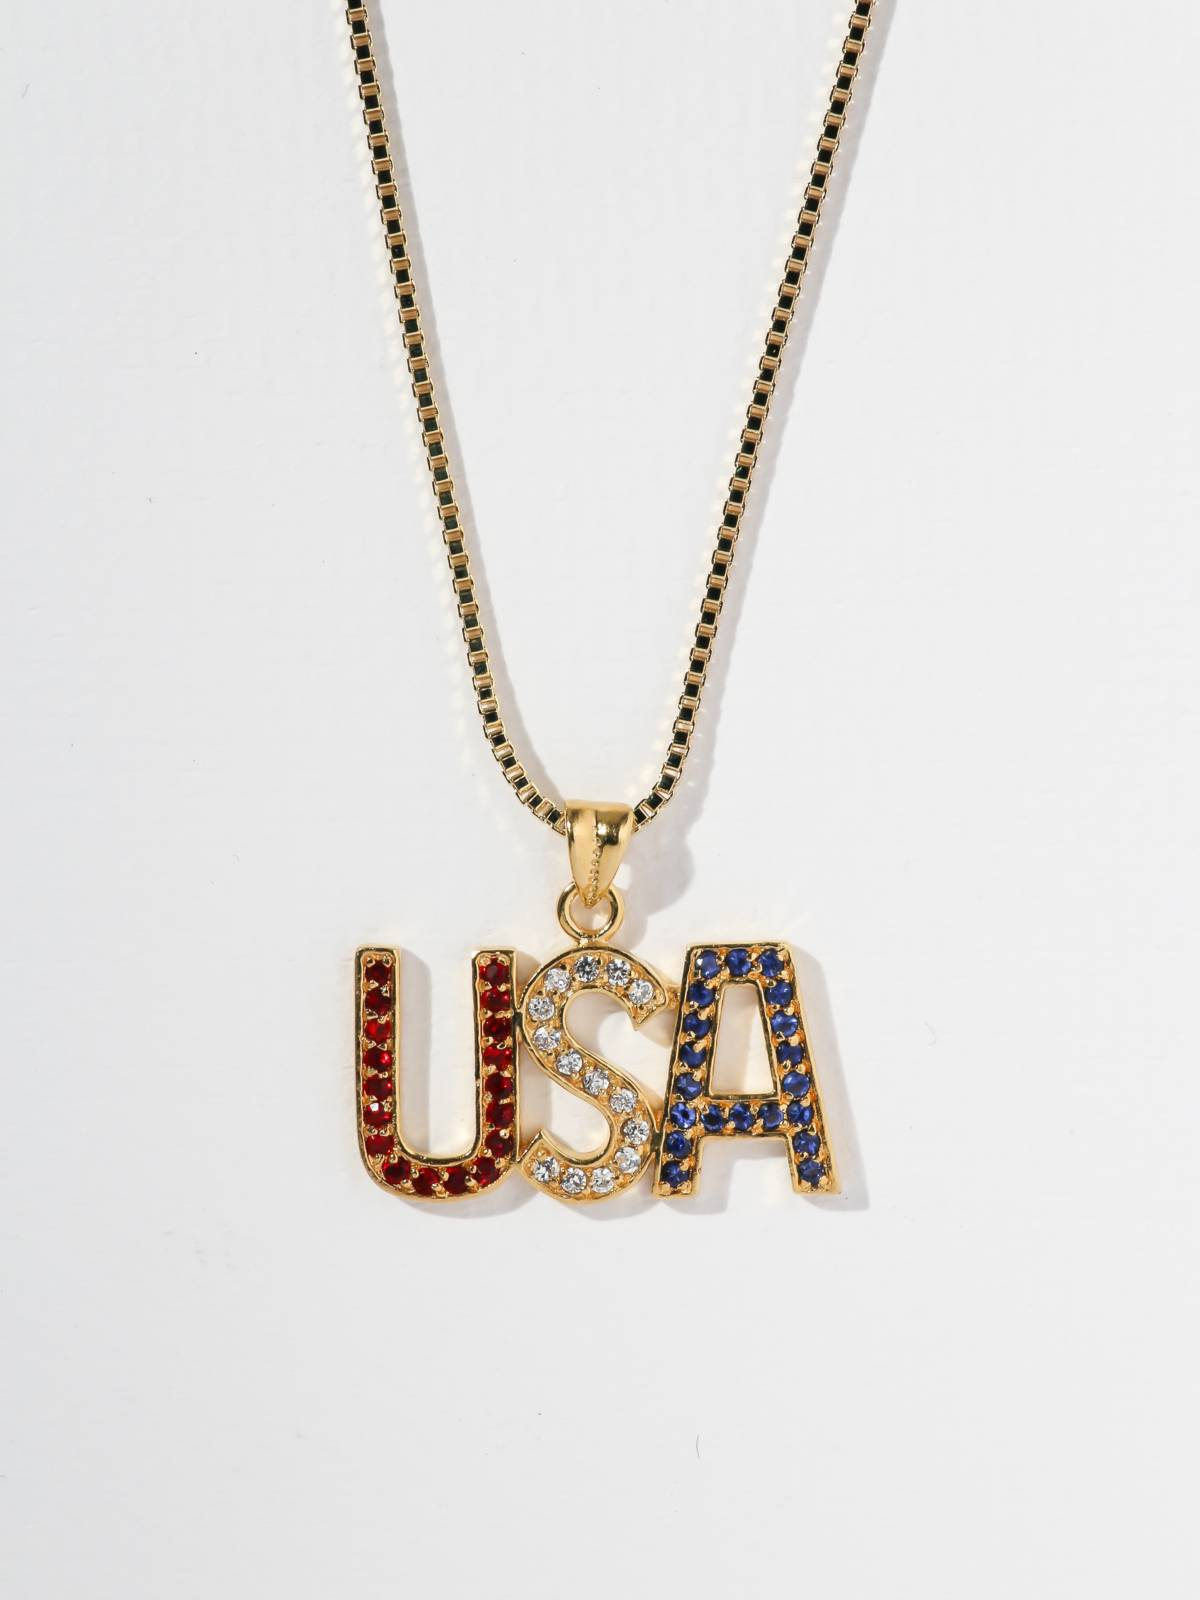 The USA Necklace